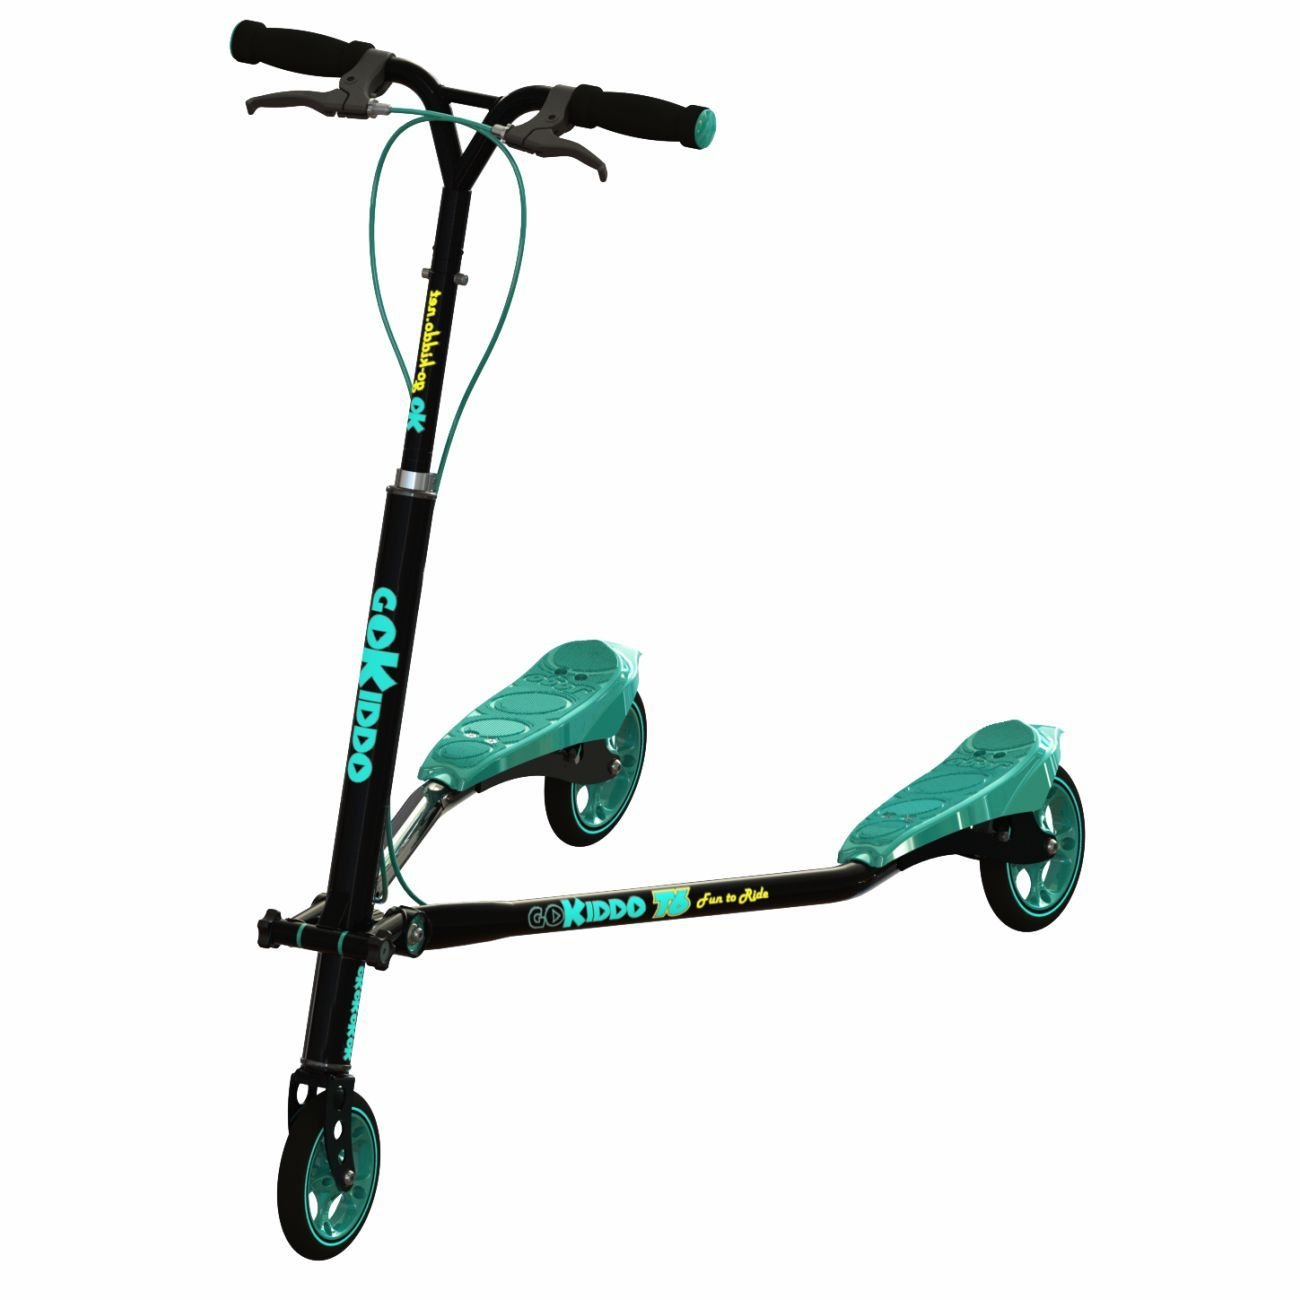 Go-Kiddo T6 Carving Scooter, Black by Go-Kiddo